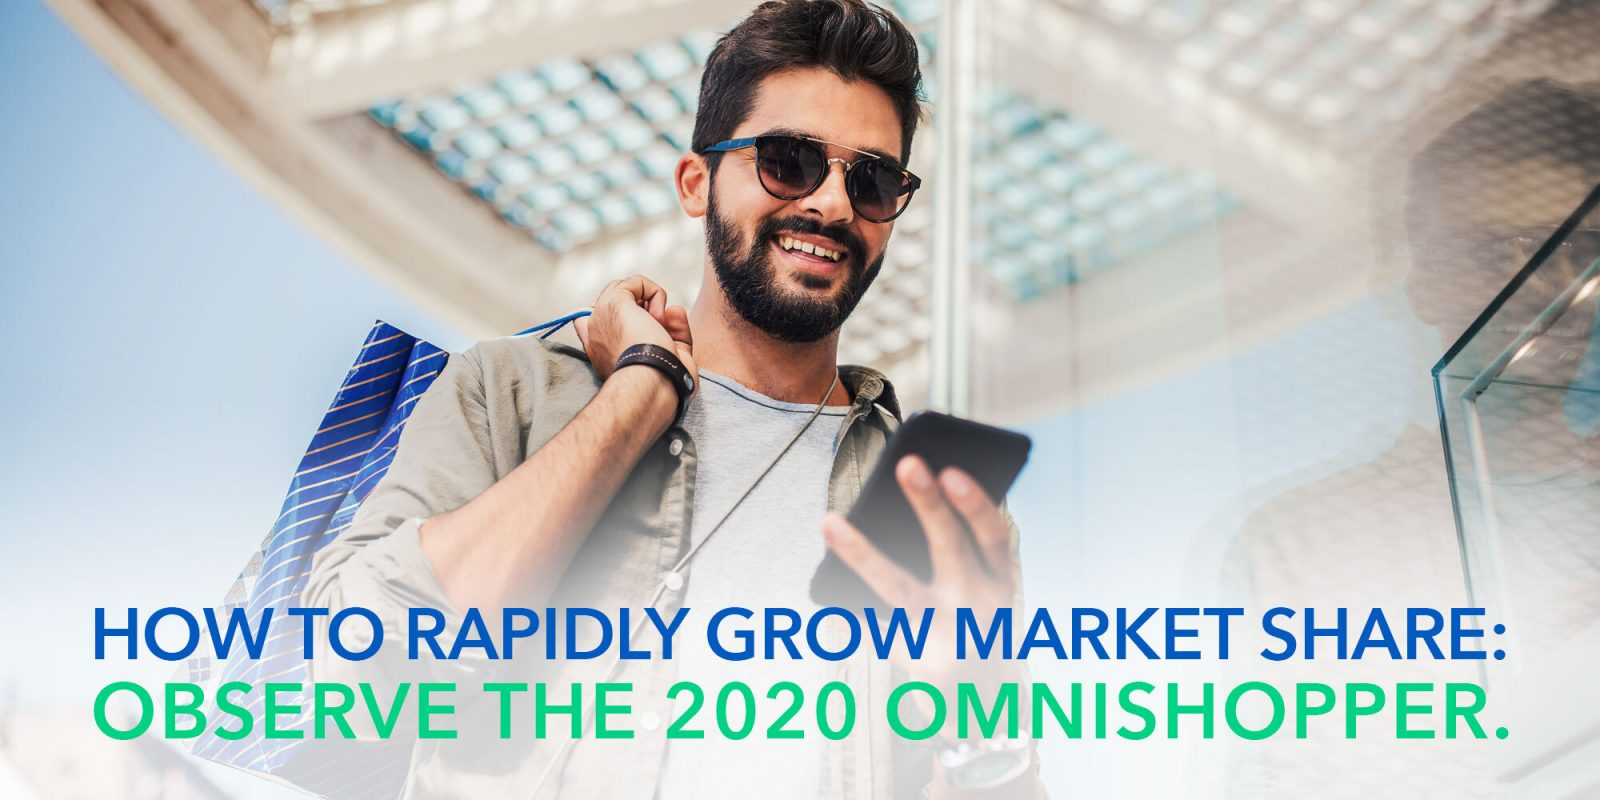 How to rapidly grow market share: observe the 2020 omnishopper.